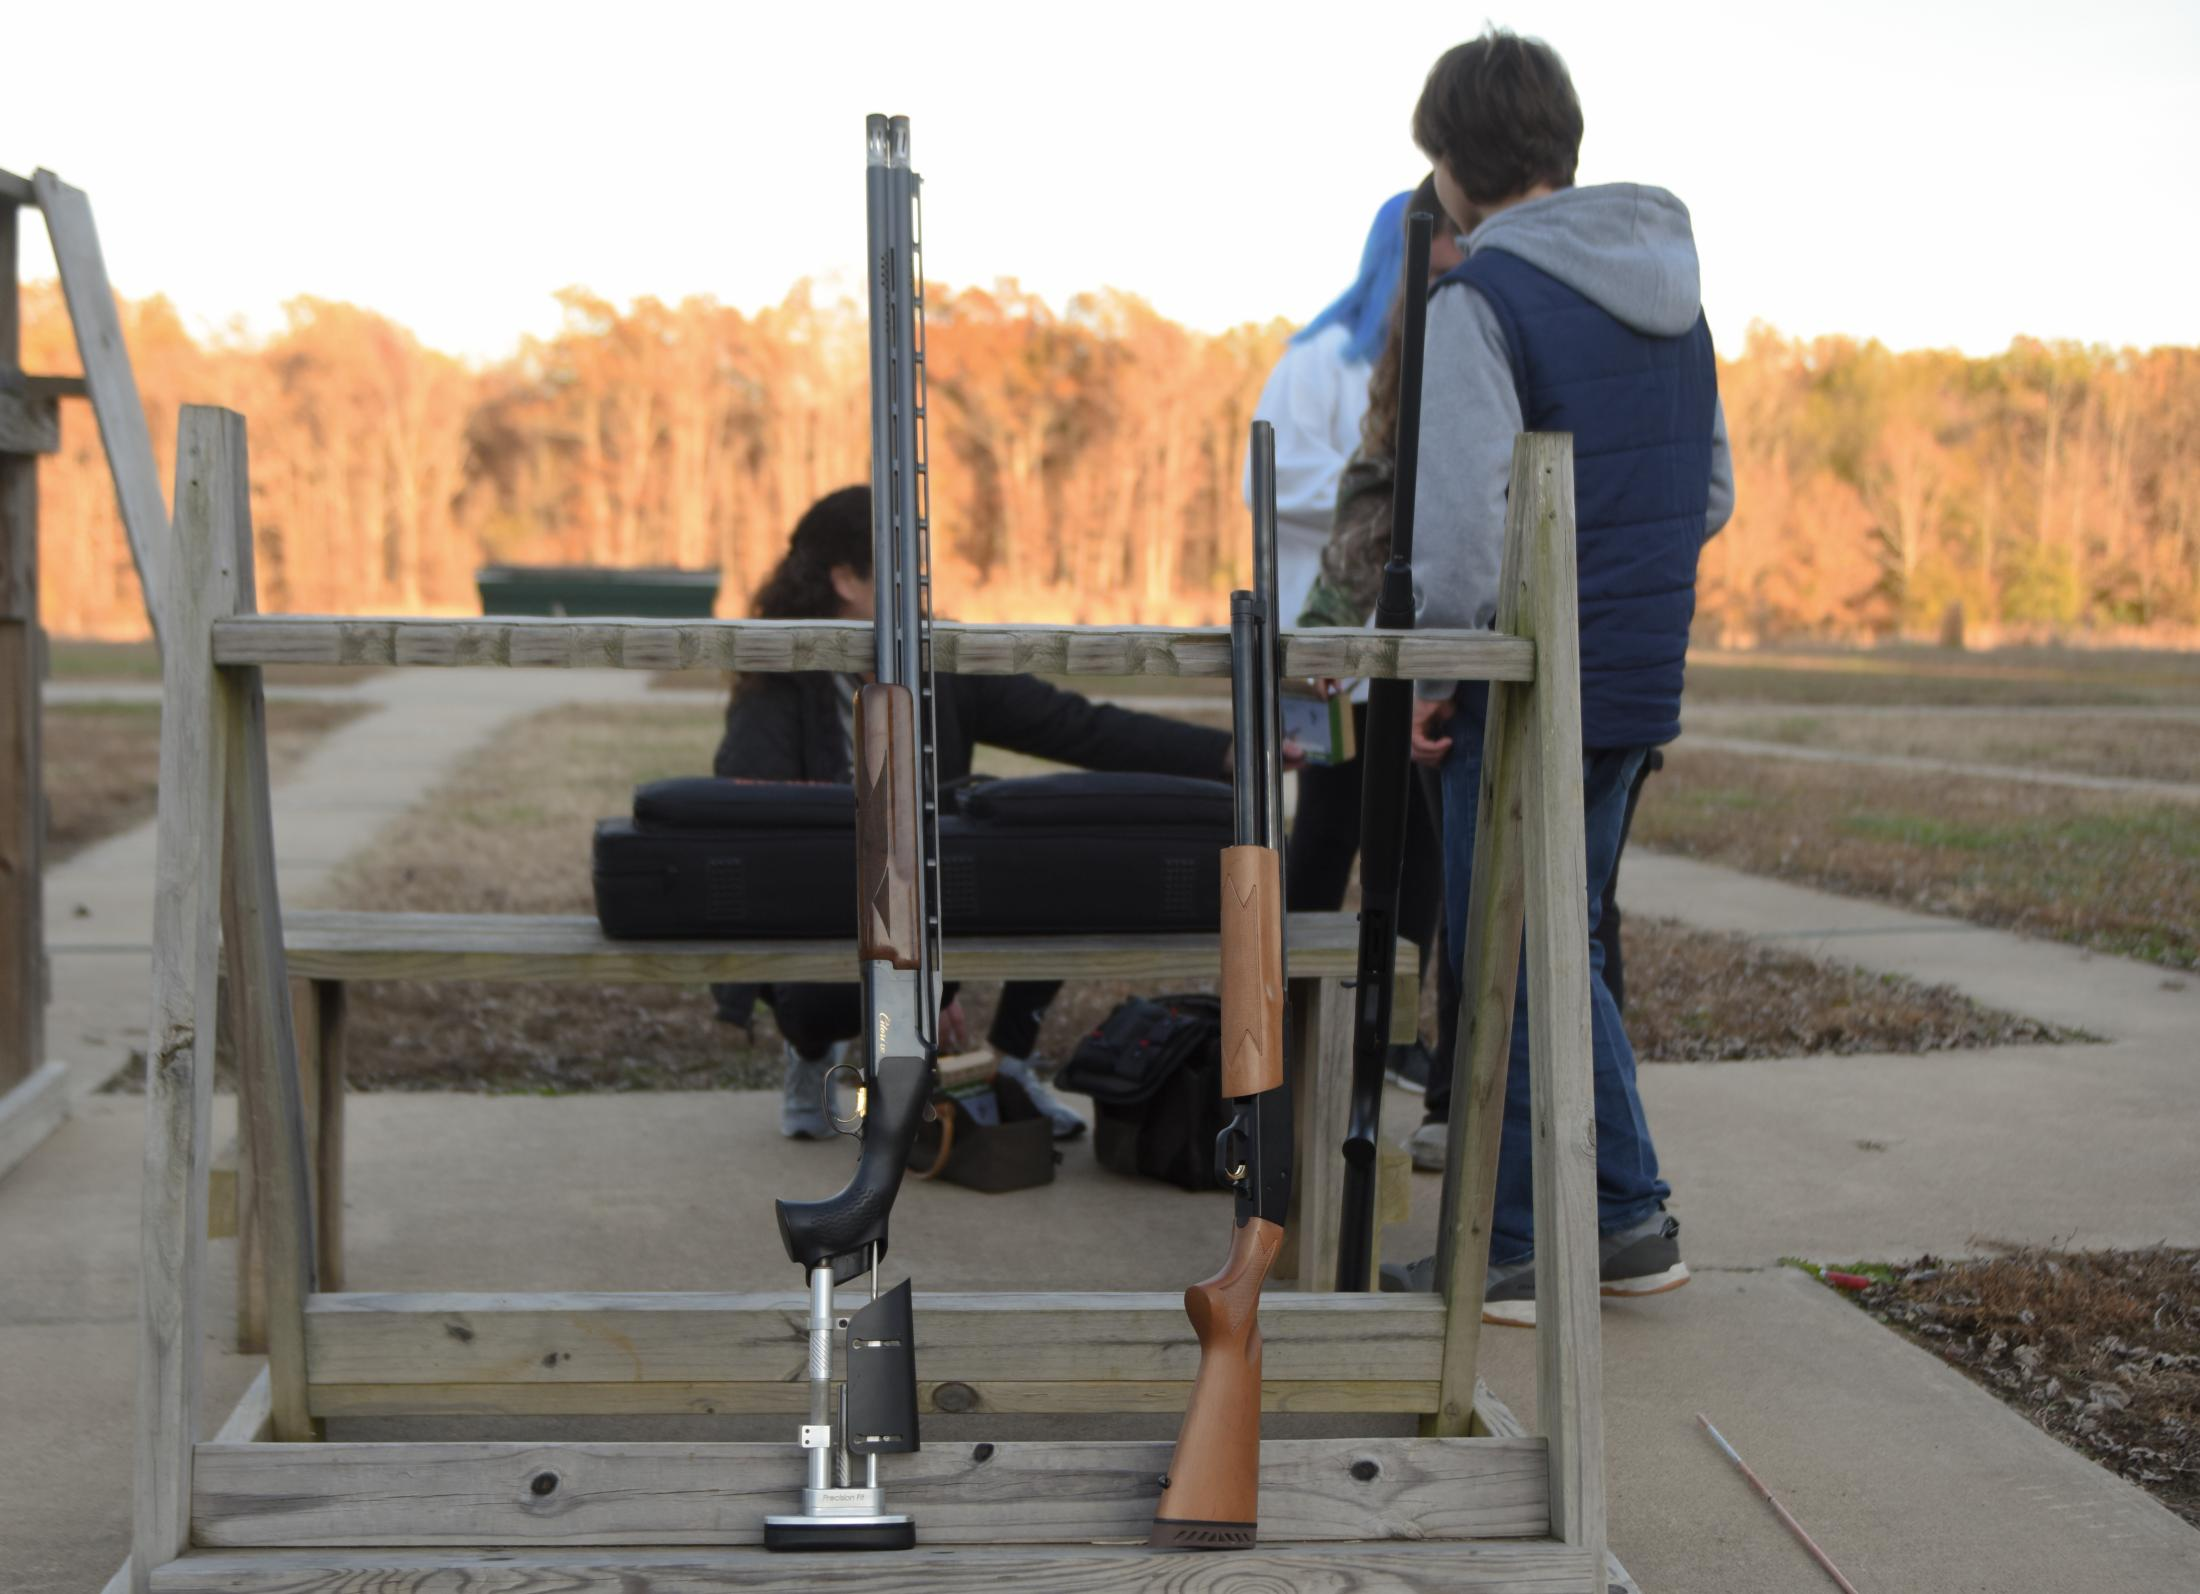 Shotguns sit on a stand at the Poplar Bluff Gun Club in front of the trap shooting range in Poplar Bluff, Missouri on November 9, 2019. Poplar Bluff High School's $42,000 in support from the NRA Foundation came in three grants, issued in 2011, 2014 and 2015.